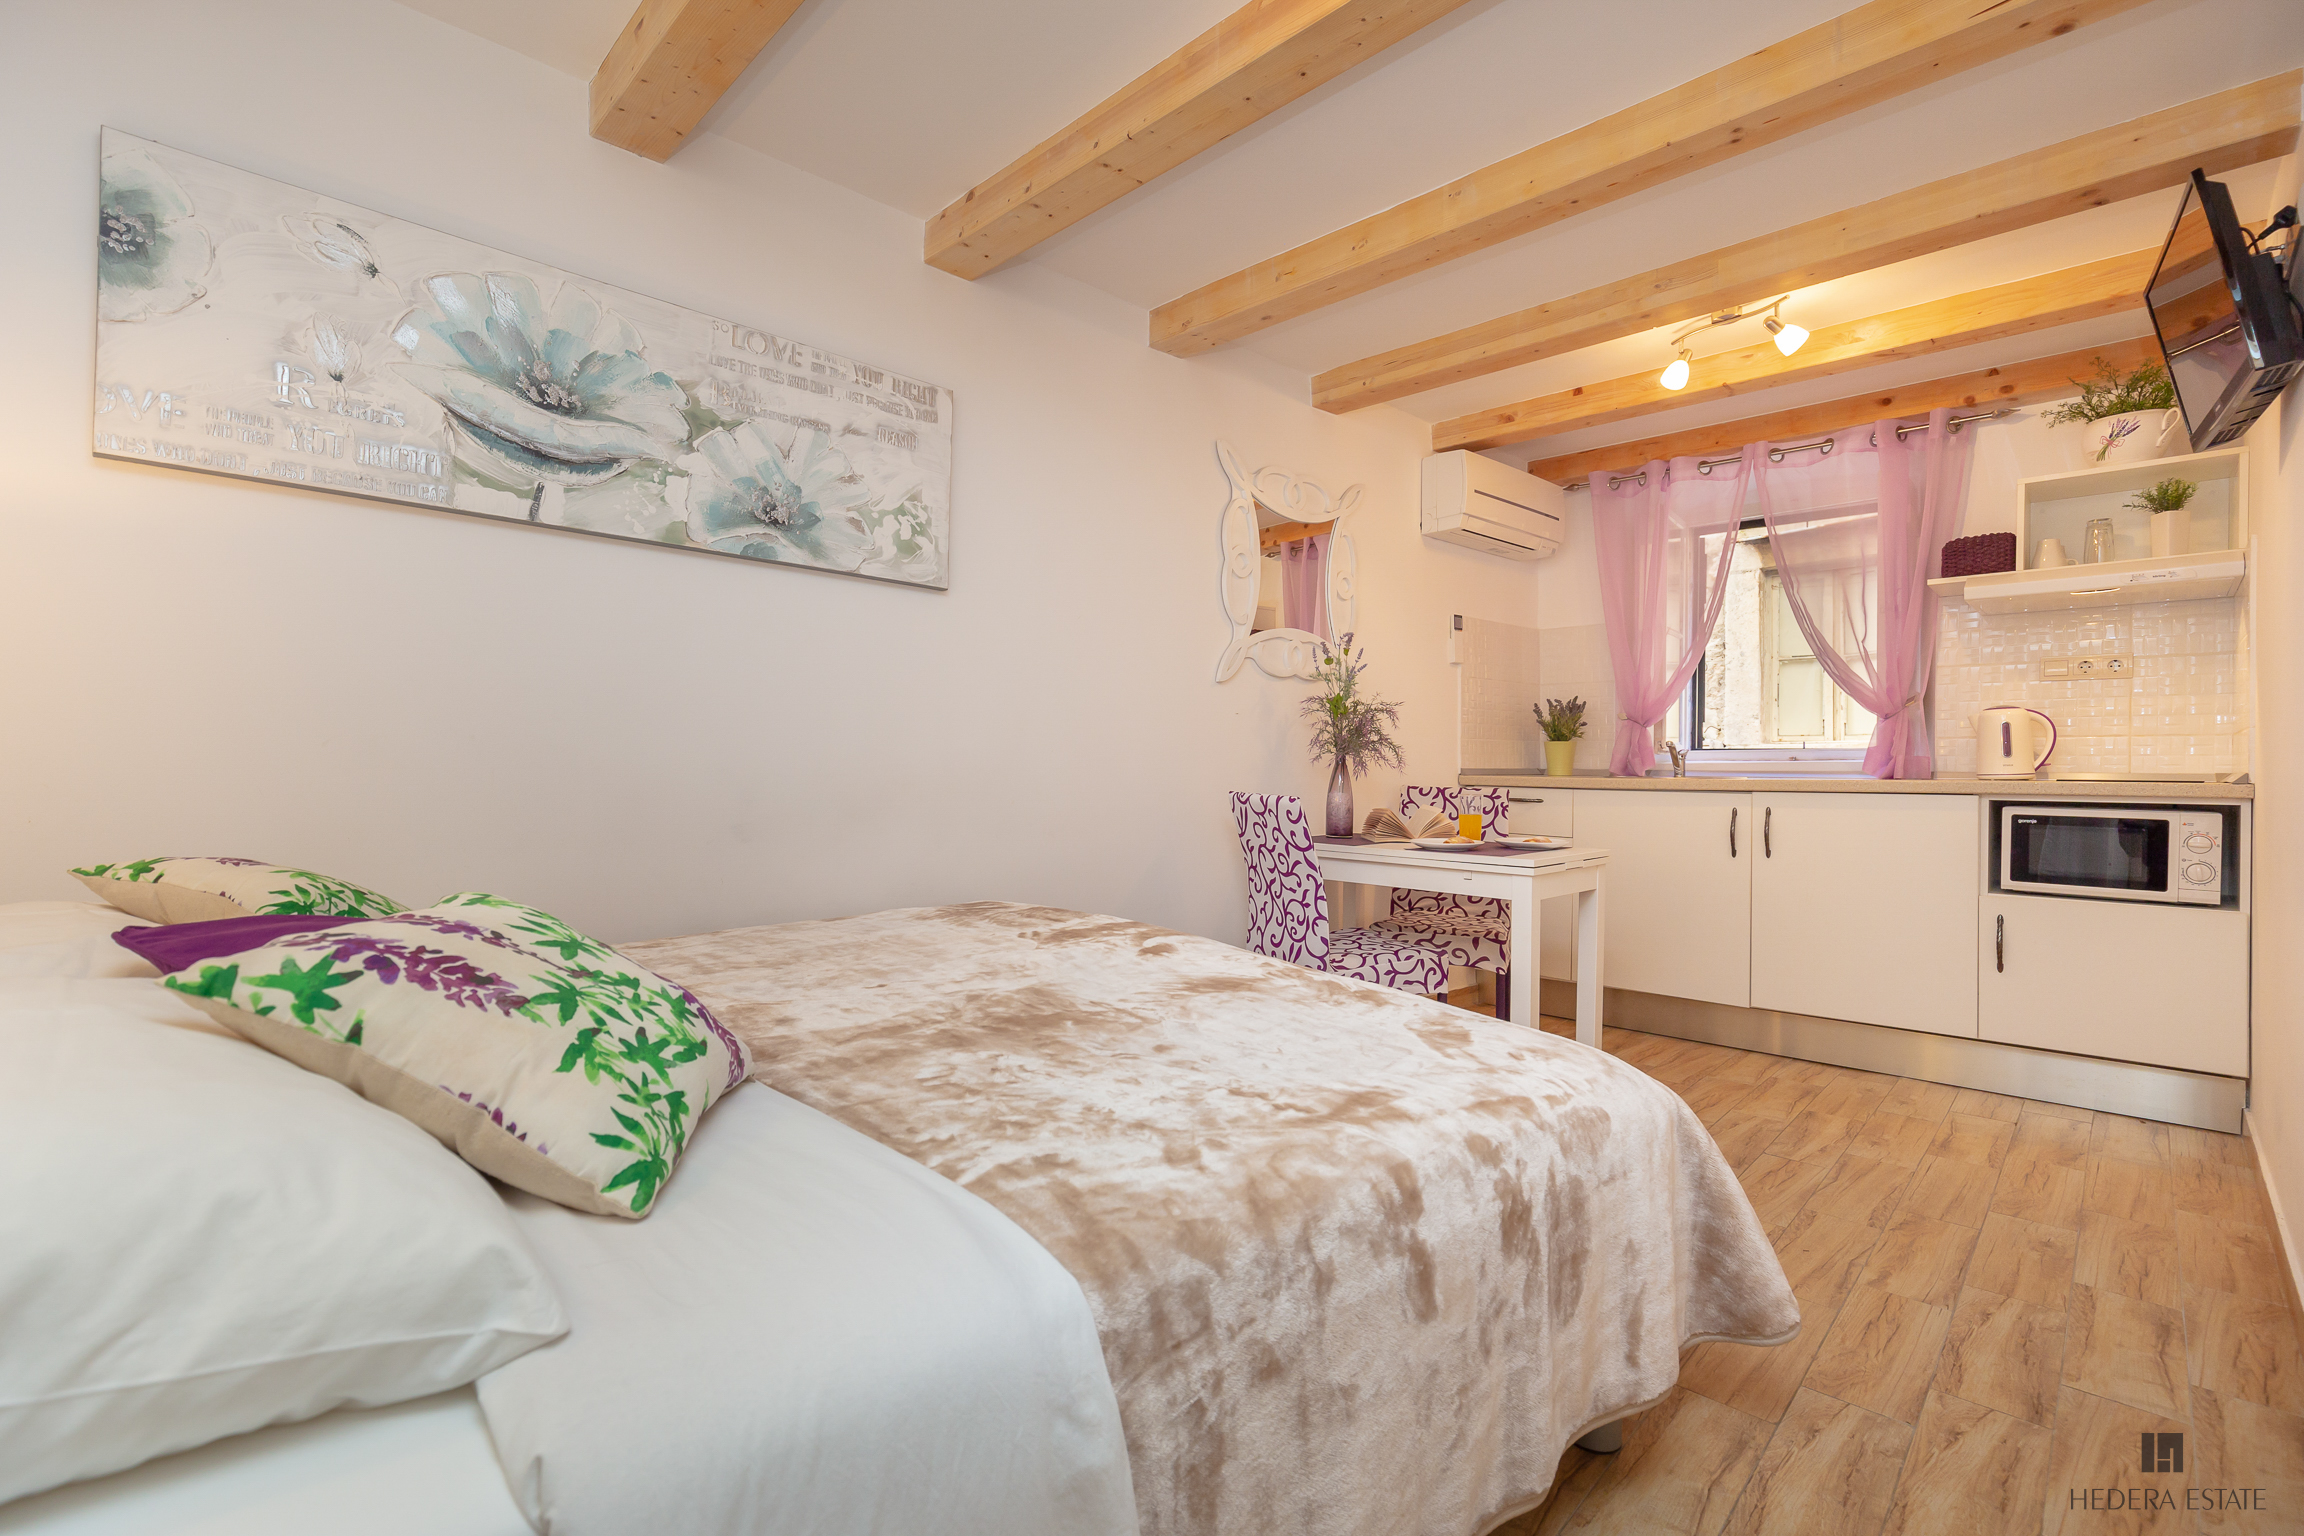 <p>Sleeps 2<br />1 double bed<br />1 bathroom<br />Kitchenette and dining area<br />Located in the Old town&nbsp;<br />Distance to Buza beach: 2 minutes walk<br />Distance to Banje beach: 10 minutes walk</p>